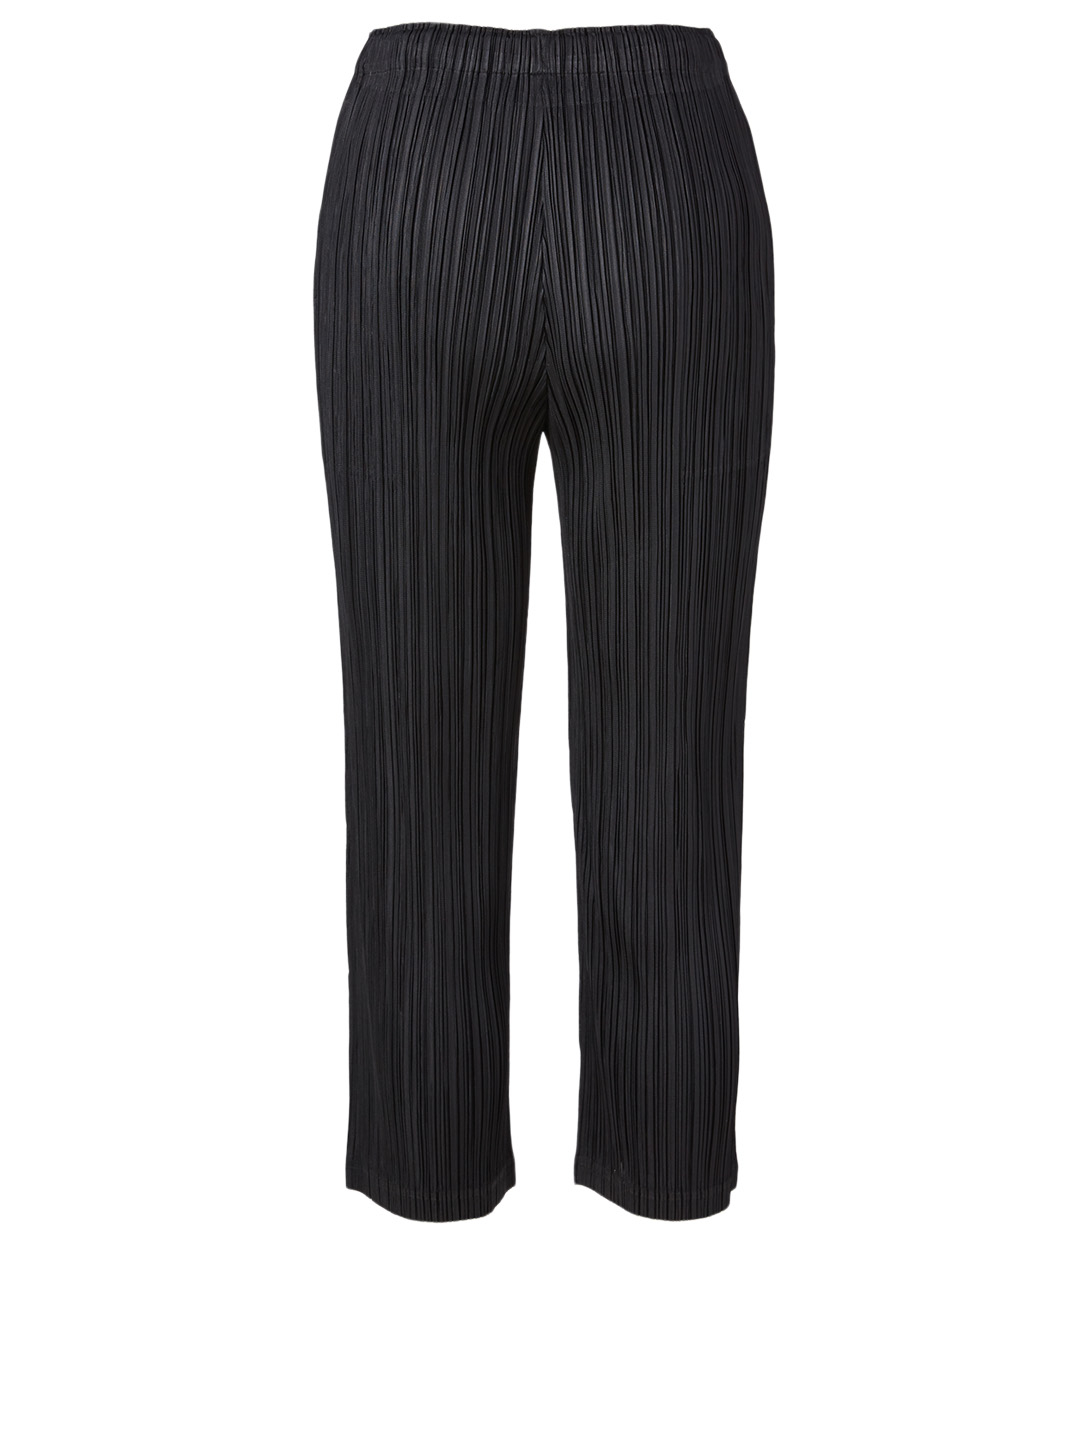 PLEATS PLEASE ISSEY MIYAKE Thicker Bottoms Pants Women's Black